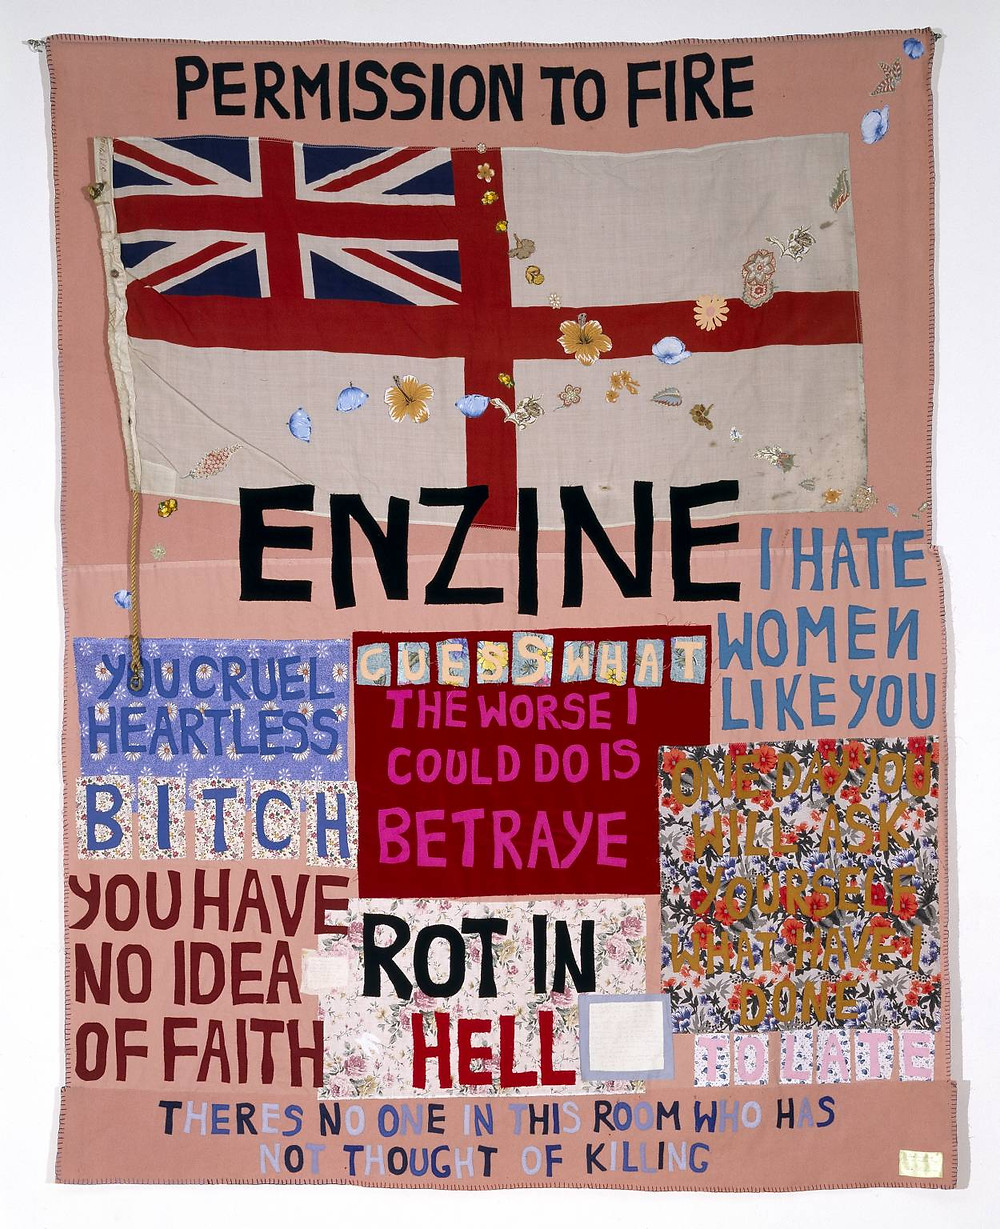 Tracey Emin, 'Hate and Power can be a Terrible Thing', 2004. Image credits: Tate Museum.